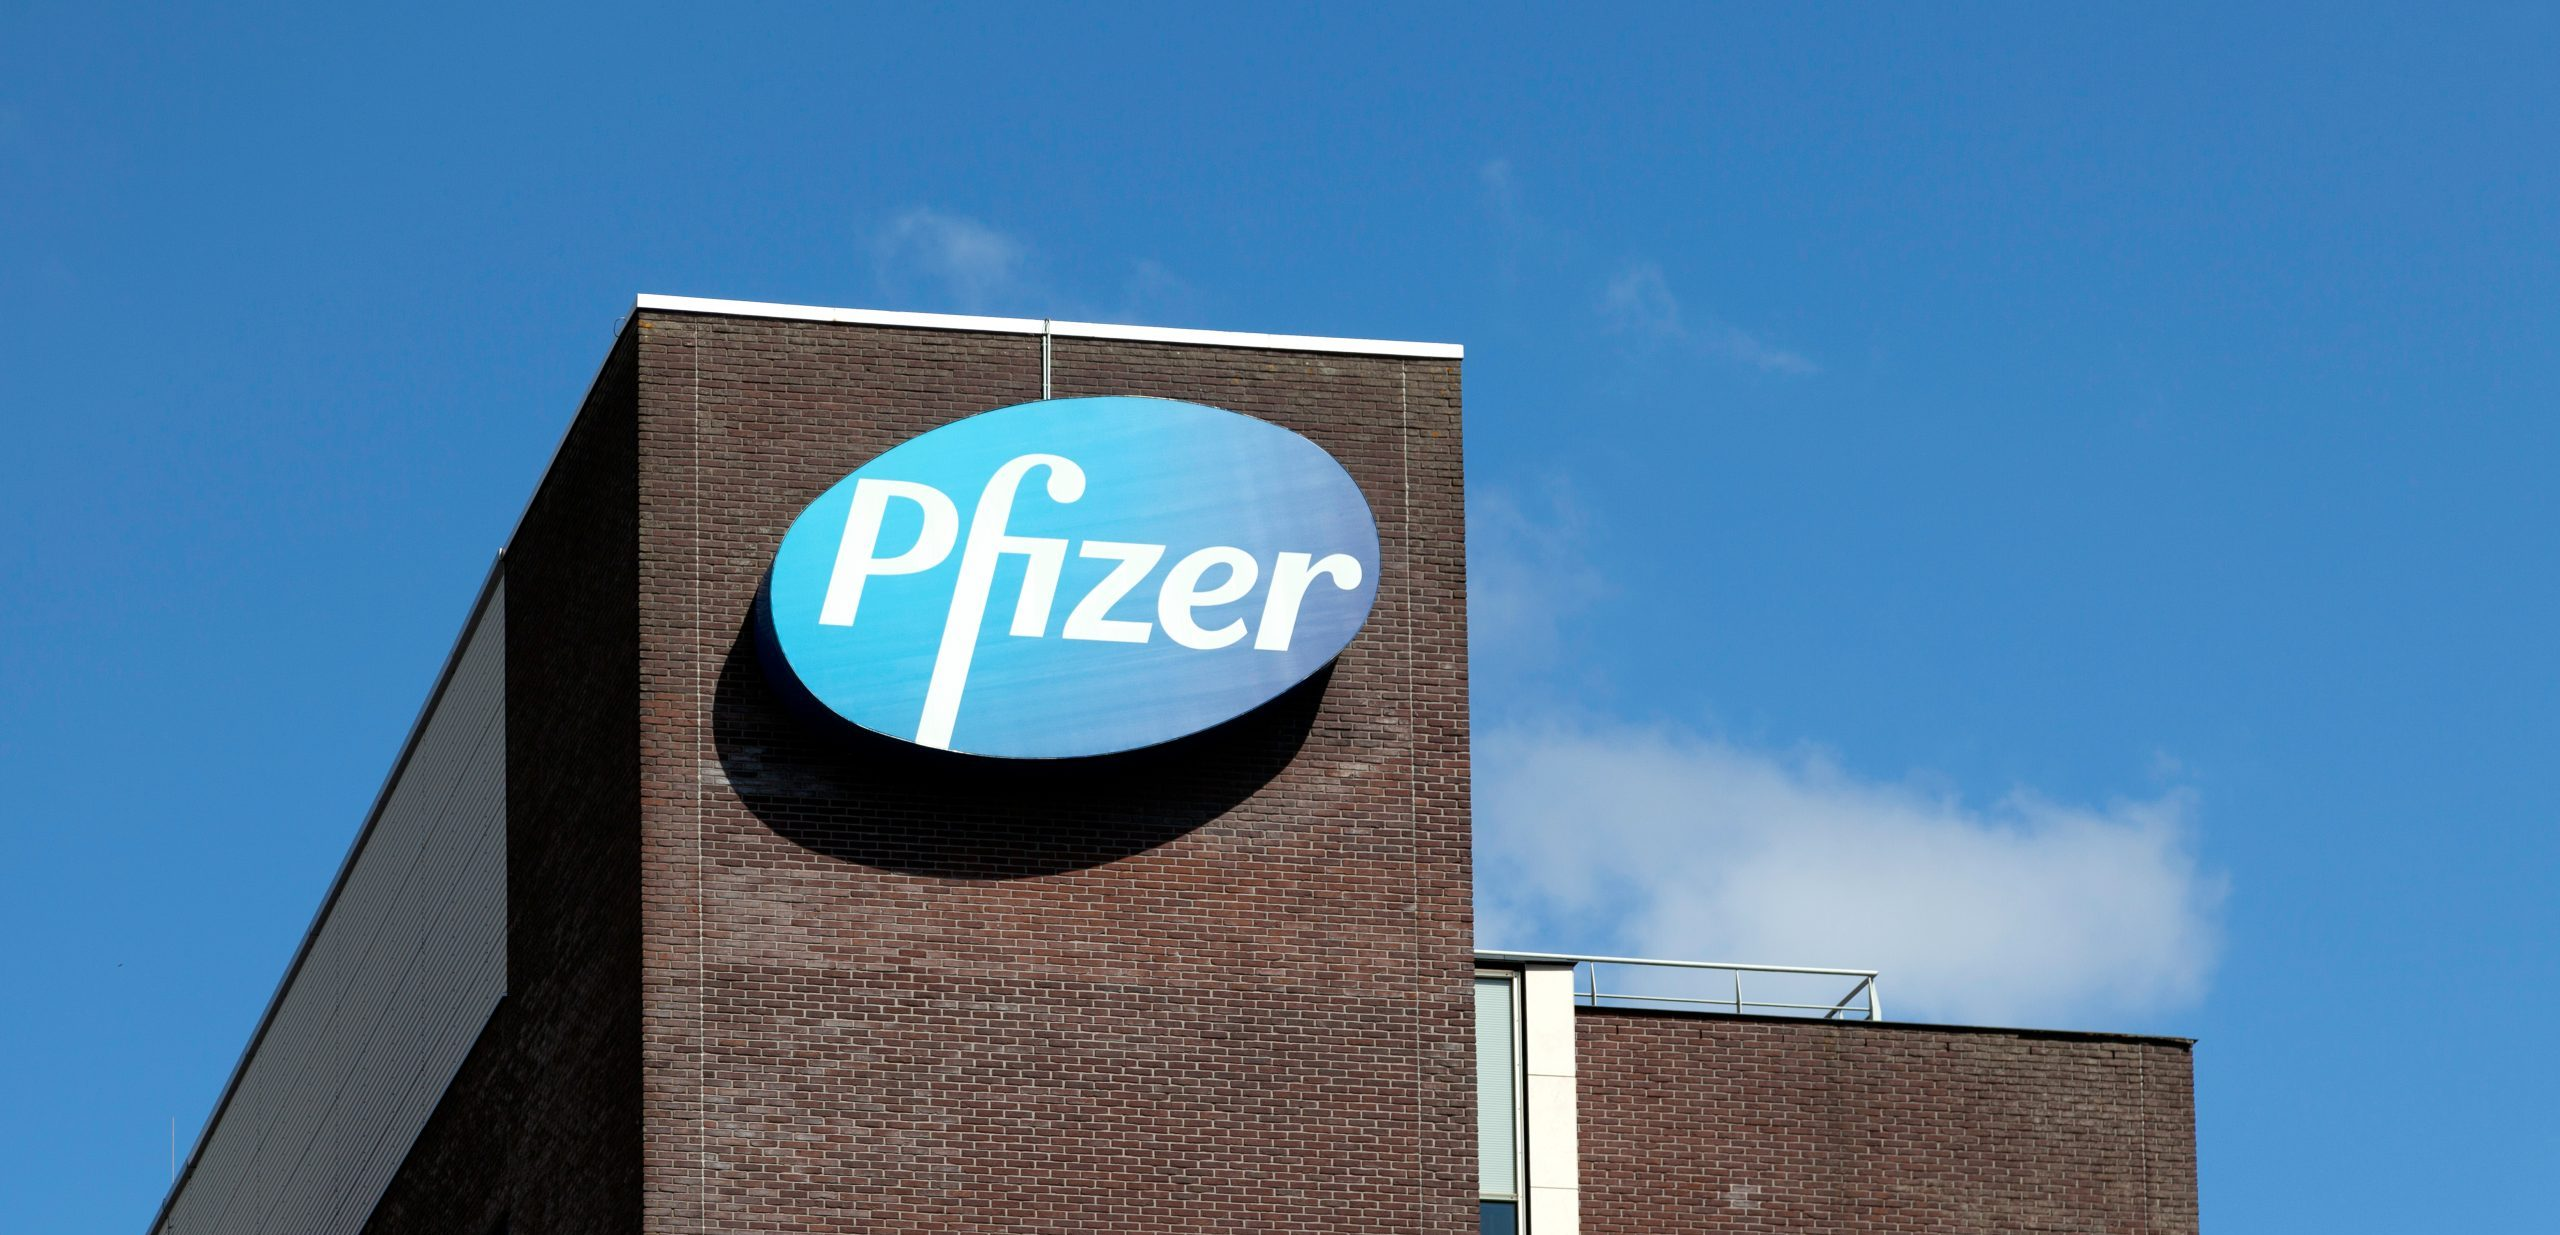 """Close up shot of the """"Pfizer"""" office building with the logo on the side, against a blue sky with white clouds."""